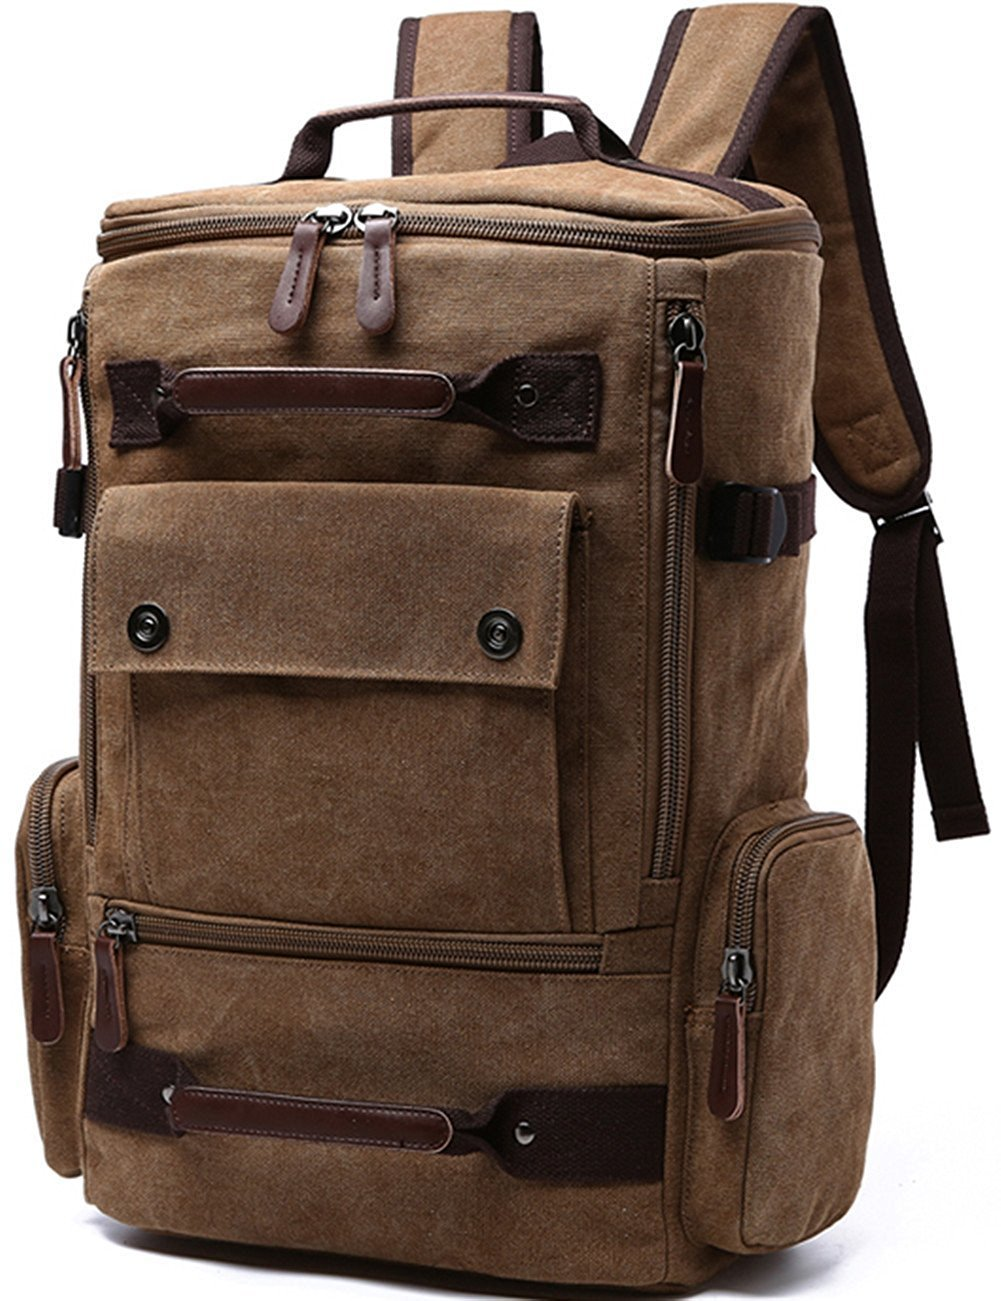 Kaukko Bags - Canvas Backpack Fashion Travel Backpack School Rucksack  Casual Vintage Daypack 9a17284ed579a